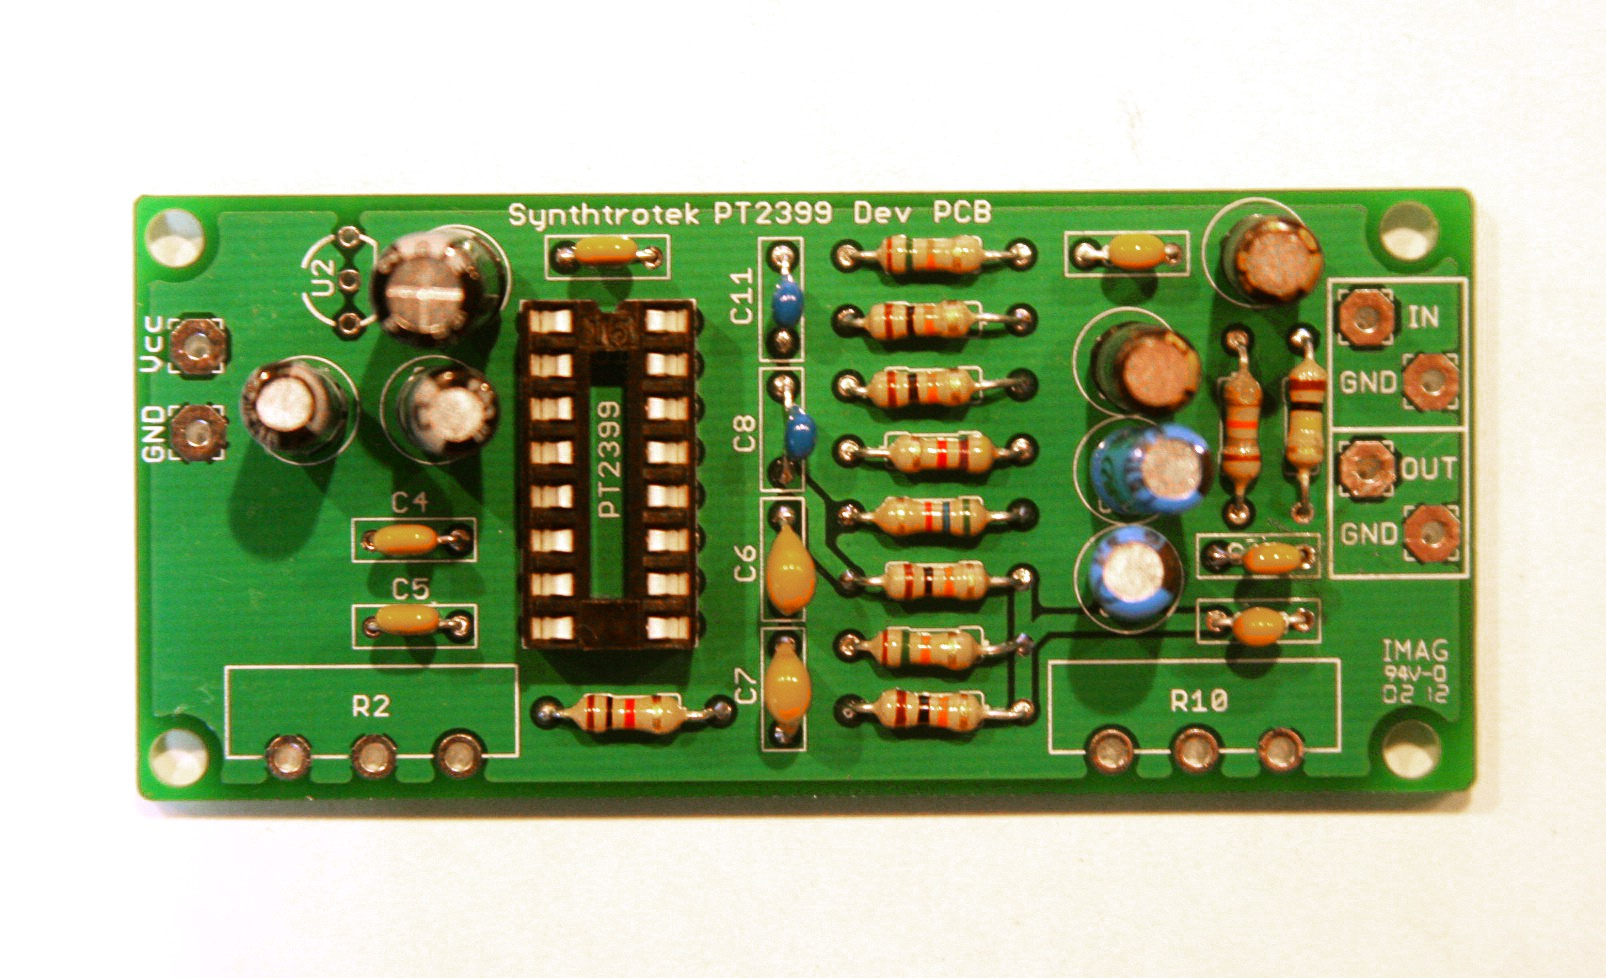 Pt2399 Dev Delay Assembly Instructions Synthrotek Pin Circuit Board Capacitors Electronics Operational Amplifiers On Diy